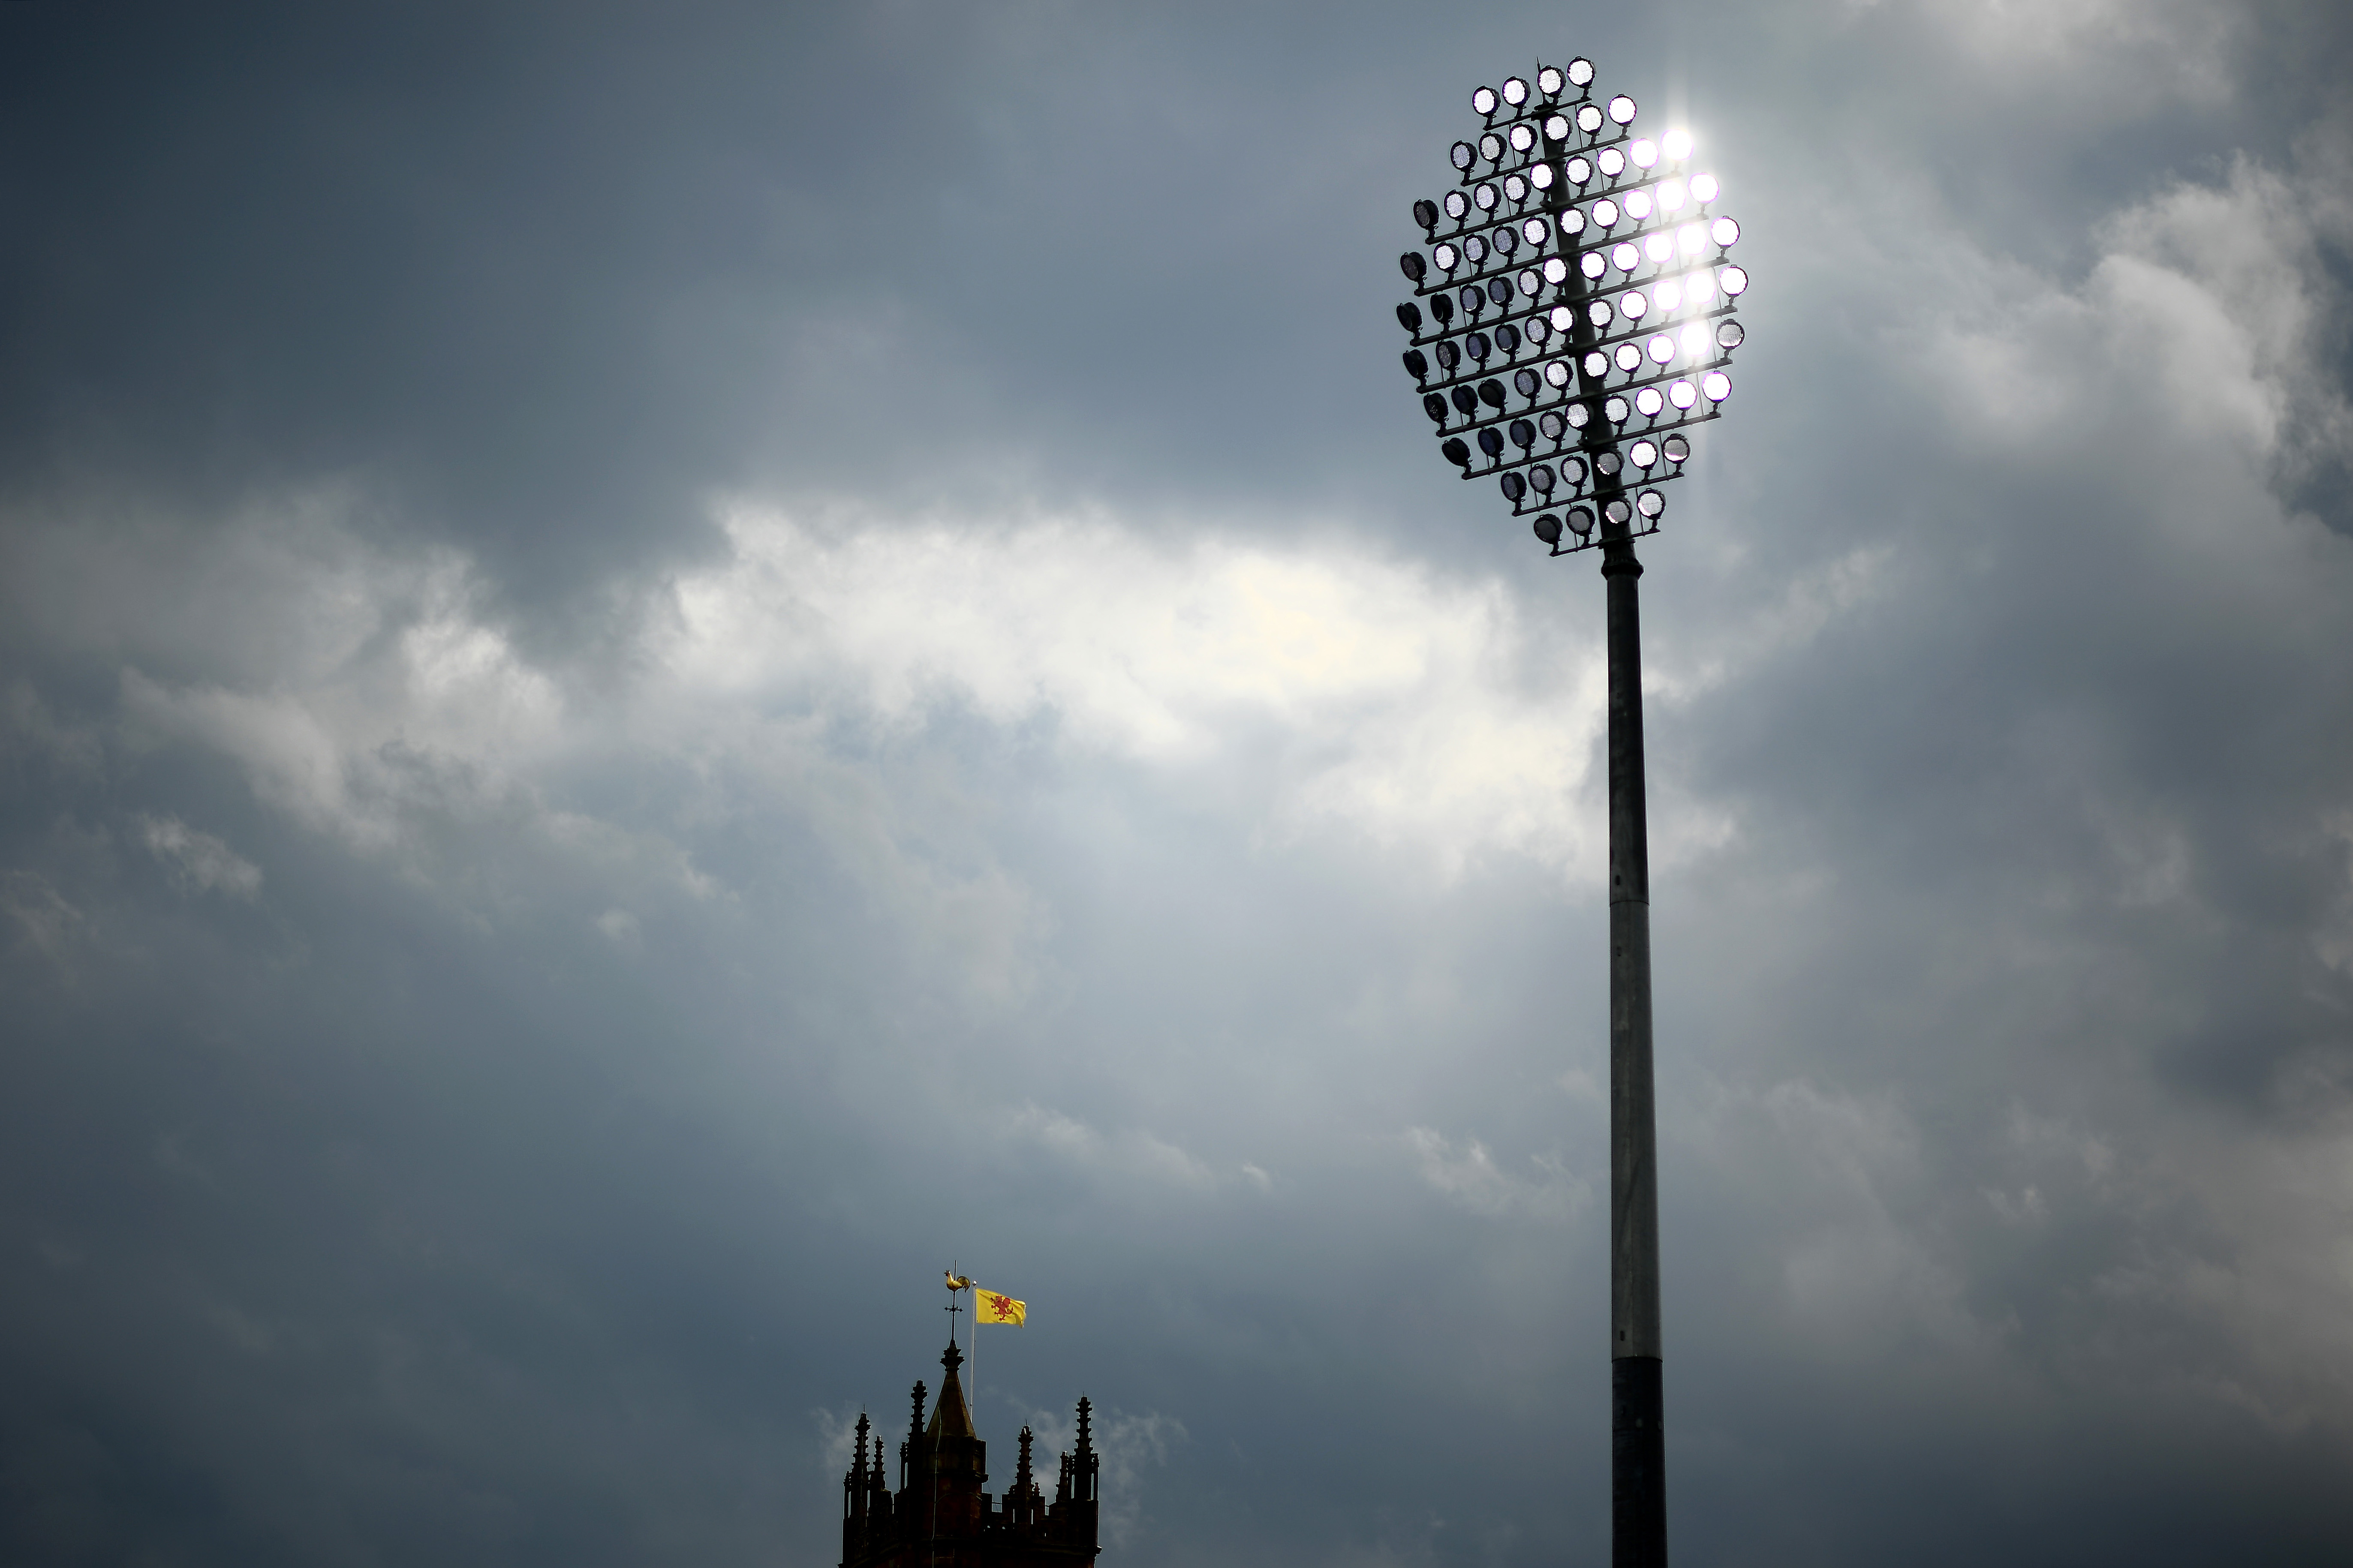 <p>TAUNTON, ENGLAND - SEPTEMBER 13: A Somerset flag flies from a nearby church as the floodlights are turned on during Day Two of the LV= Insurance County Championship match between Somerset and Lancashire at The Cooper Associates County Ground on September 13, 2021 in Taunton, England. (Photo by Harry Trump/Getty Images)</p>